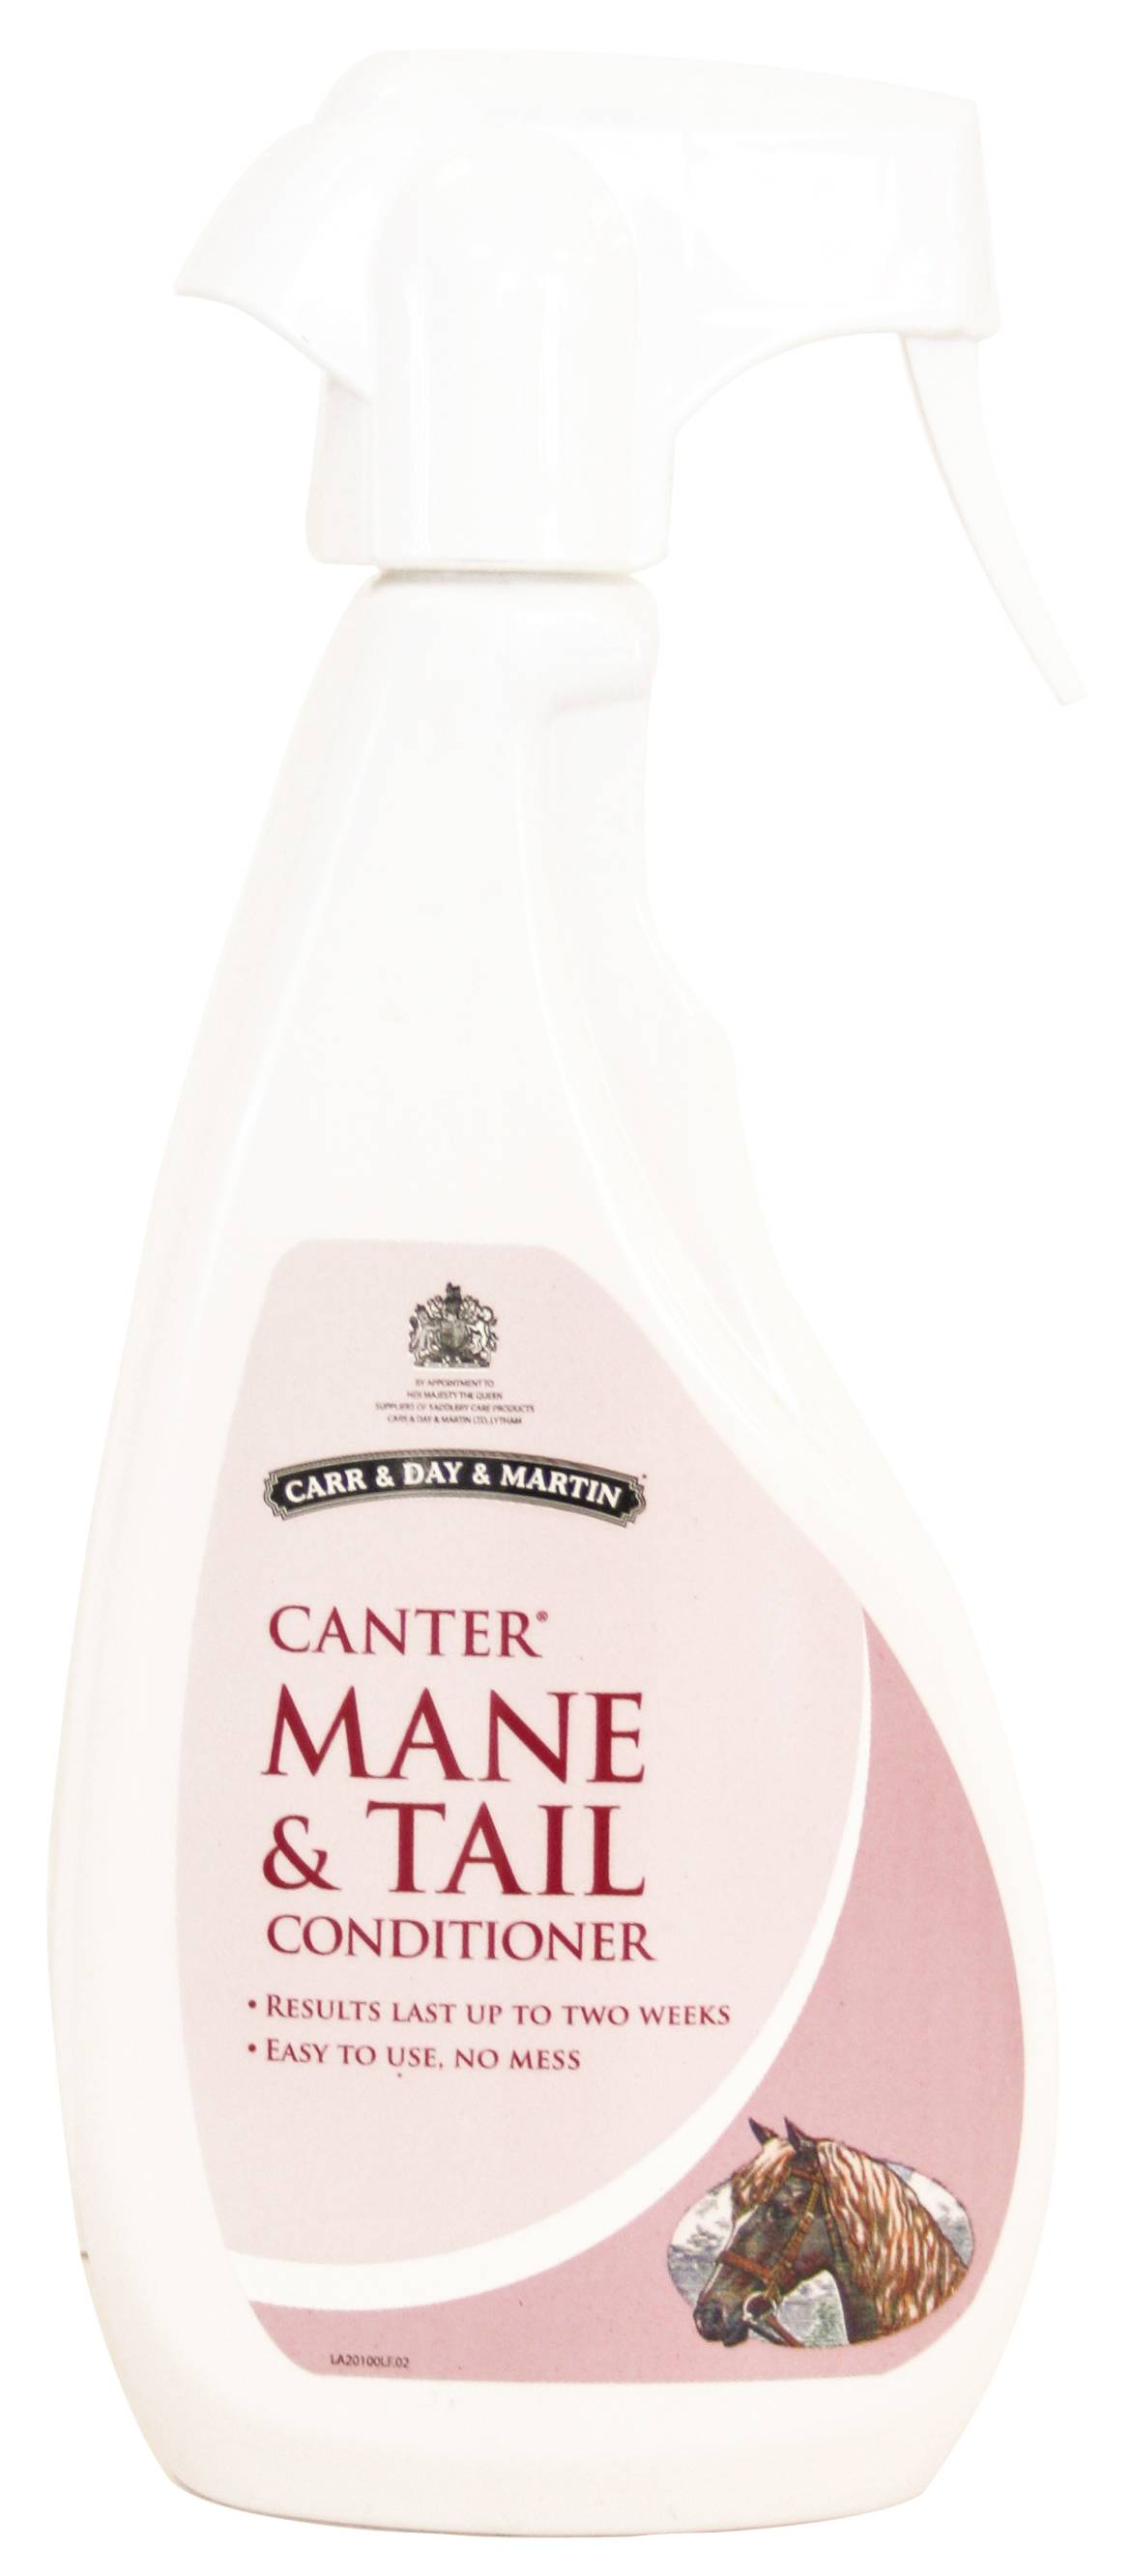 Carr & Day & Martin Canter Mane & Tail Conditioner Spray